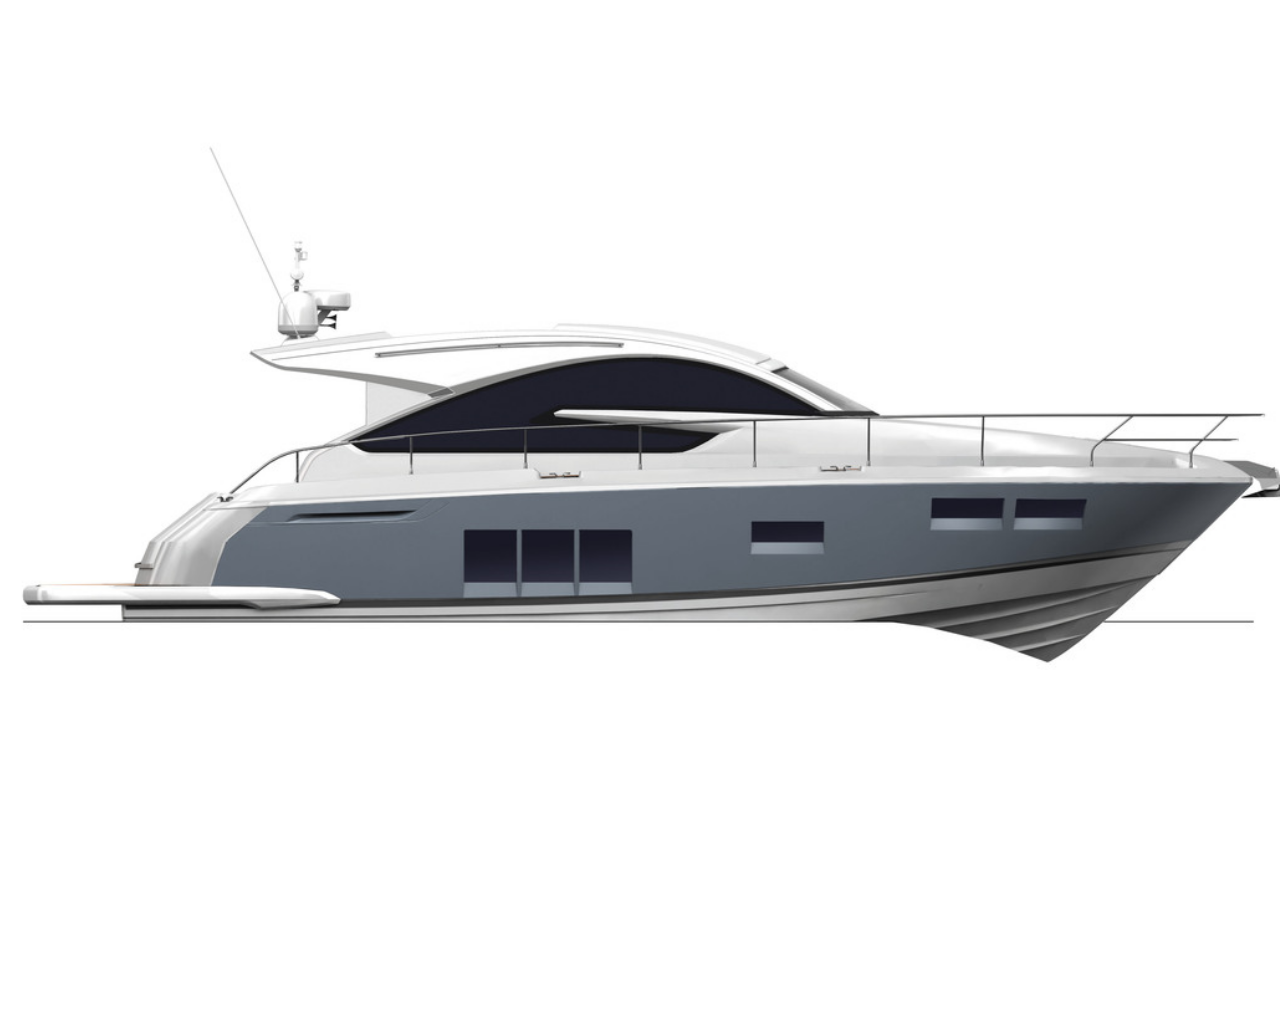 Fairline gt consulyachts layout. Clipart boat cabin cruiser